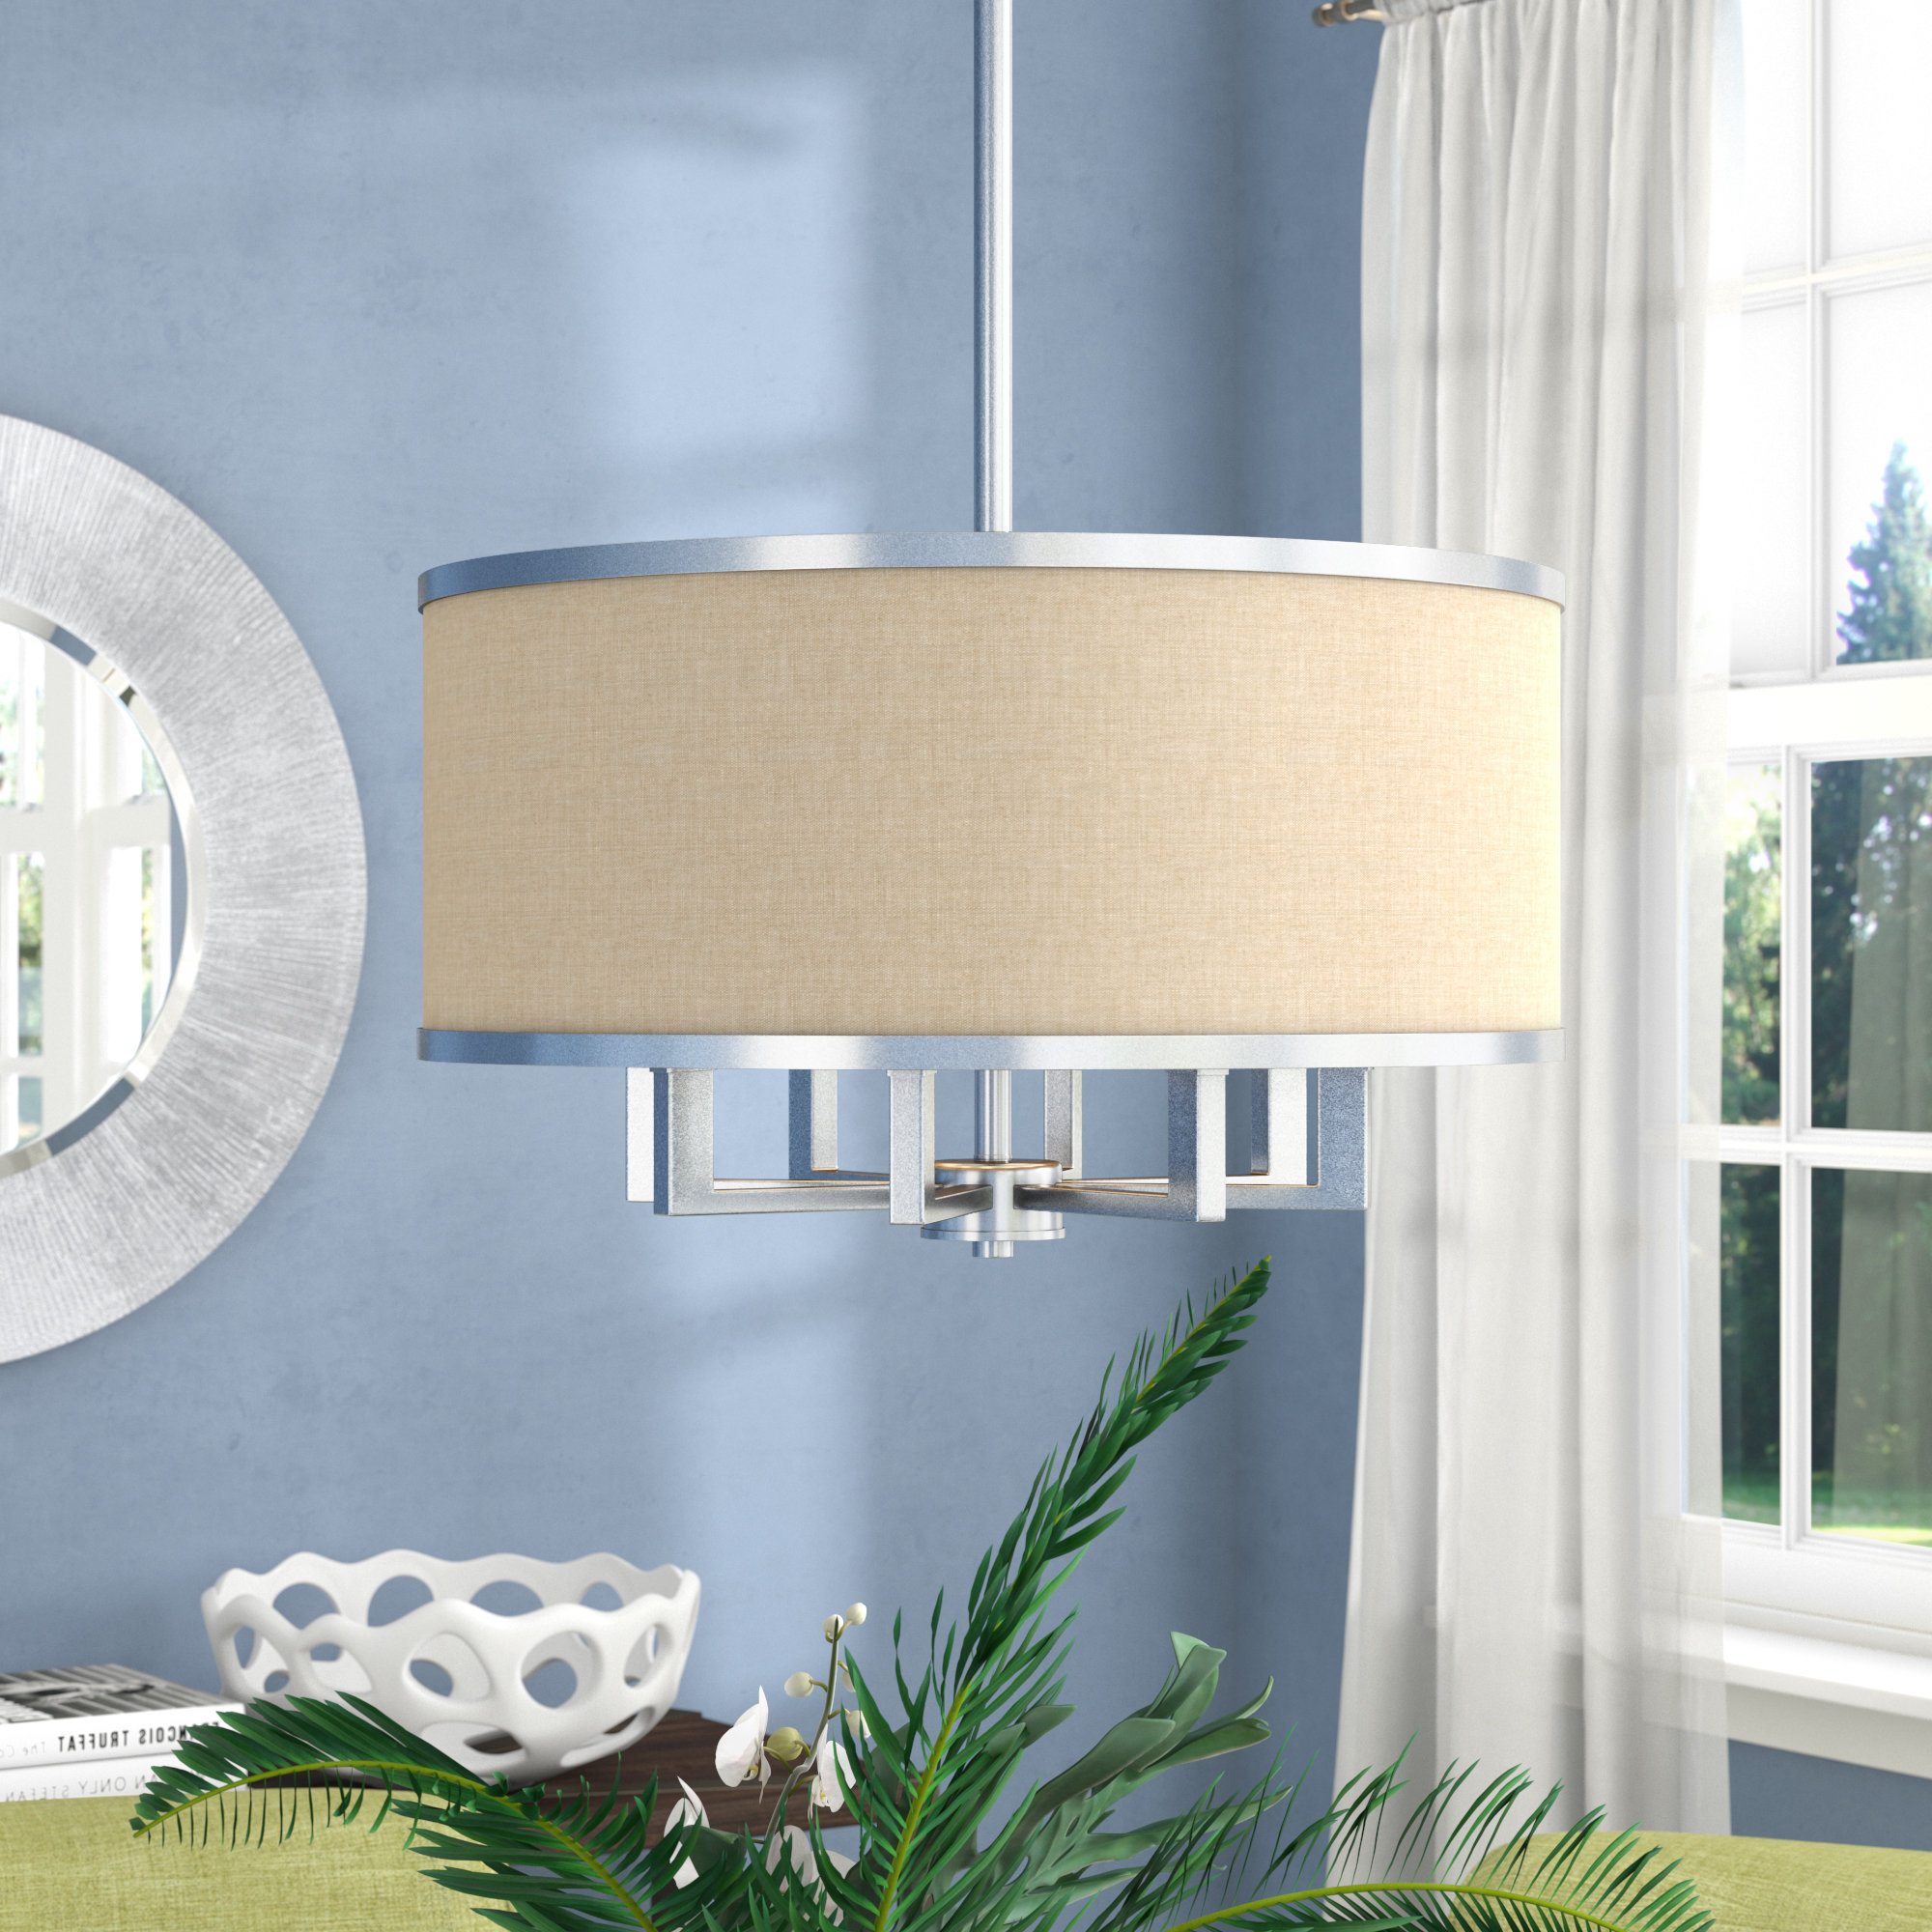 Widely Used Breithaup 4 Light Drum Chandeliers With Regard To Latitude Run Breithaup 4 Light Drum Chandelier & Reviews (View 5 of 25)